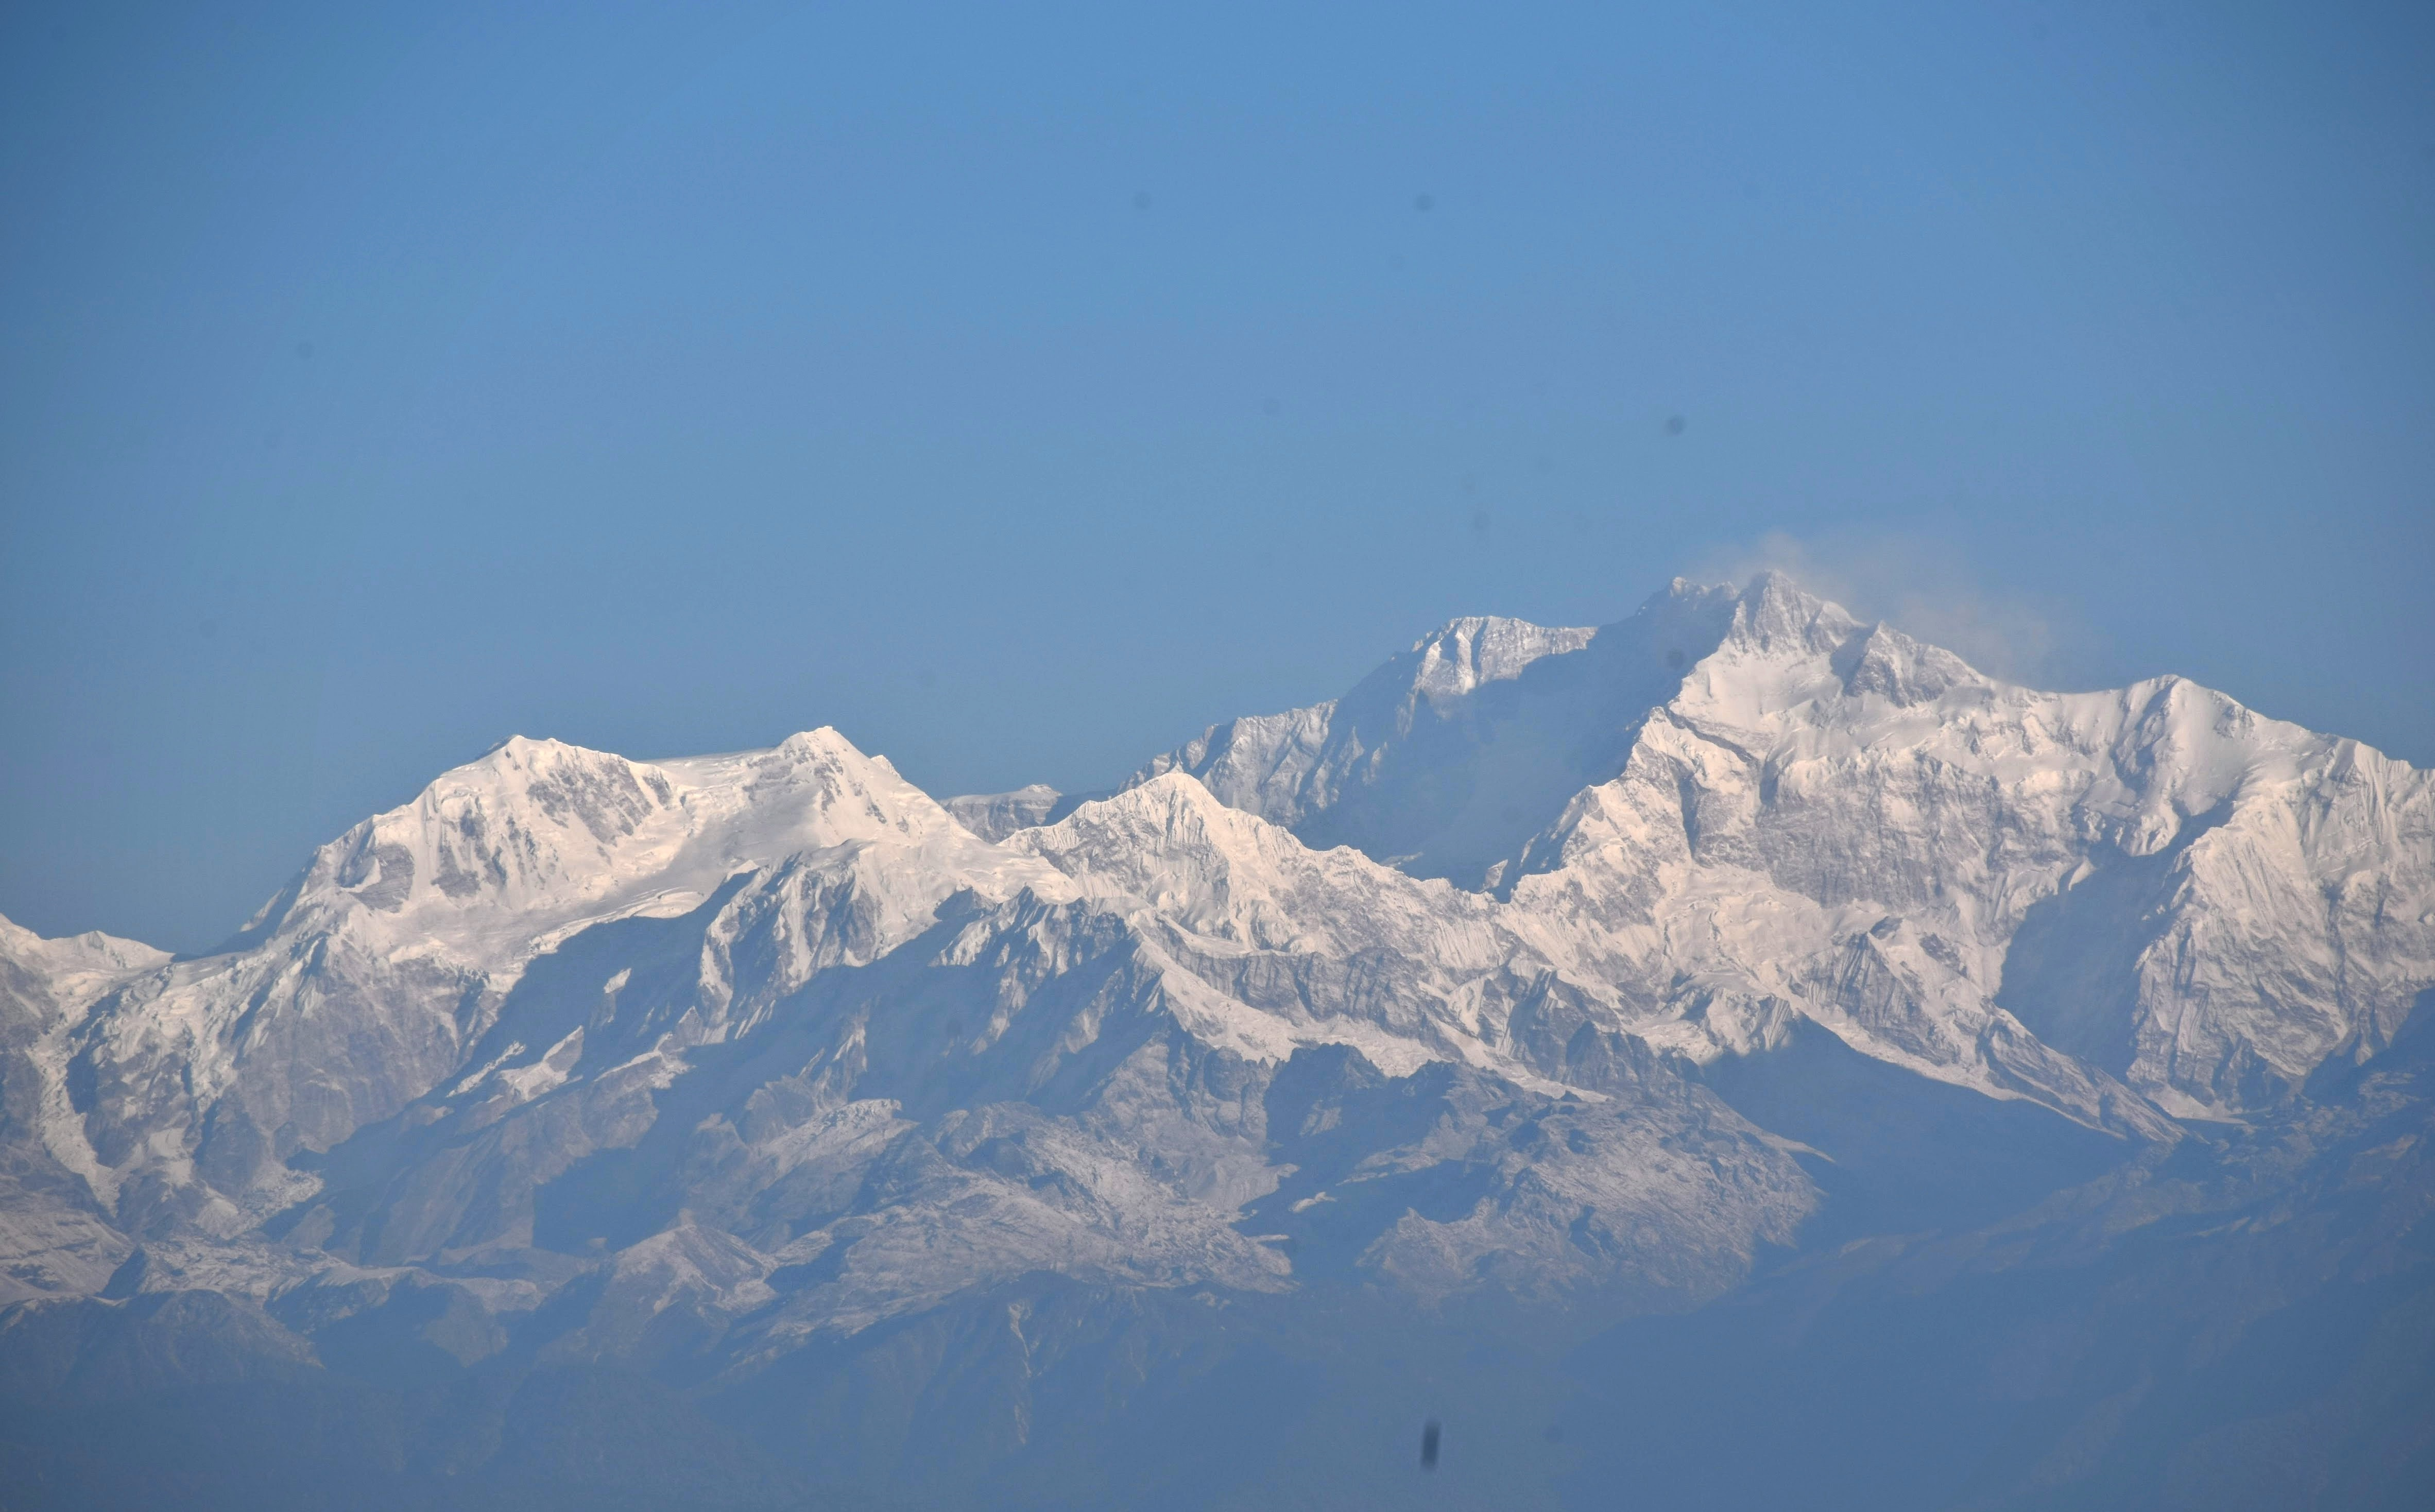 Two Indian Nationals Die on Mt. Kanchenjunga